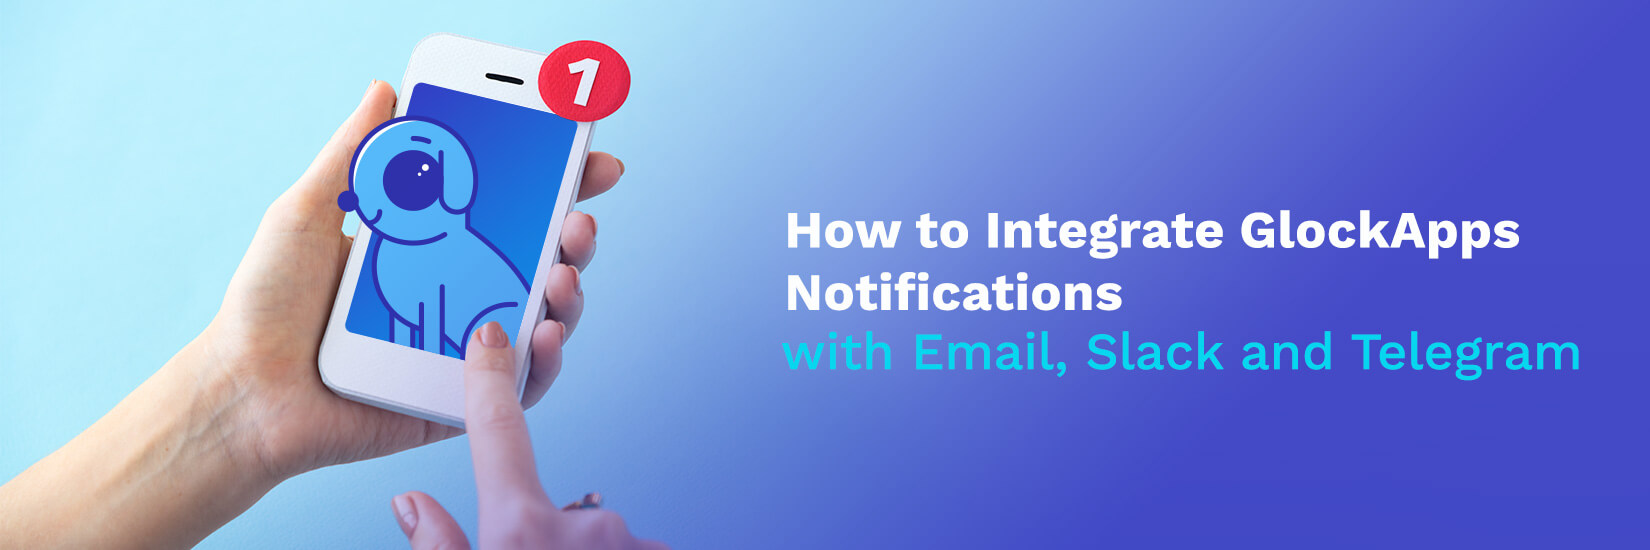 How to Integrate GlockApps Notifications with Email, Slack and Telegram